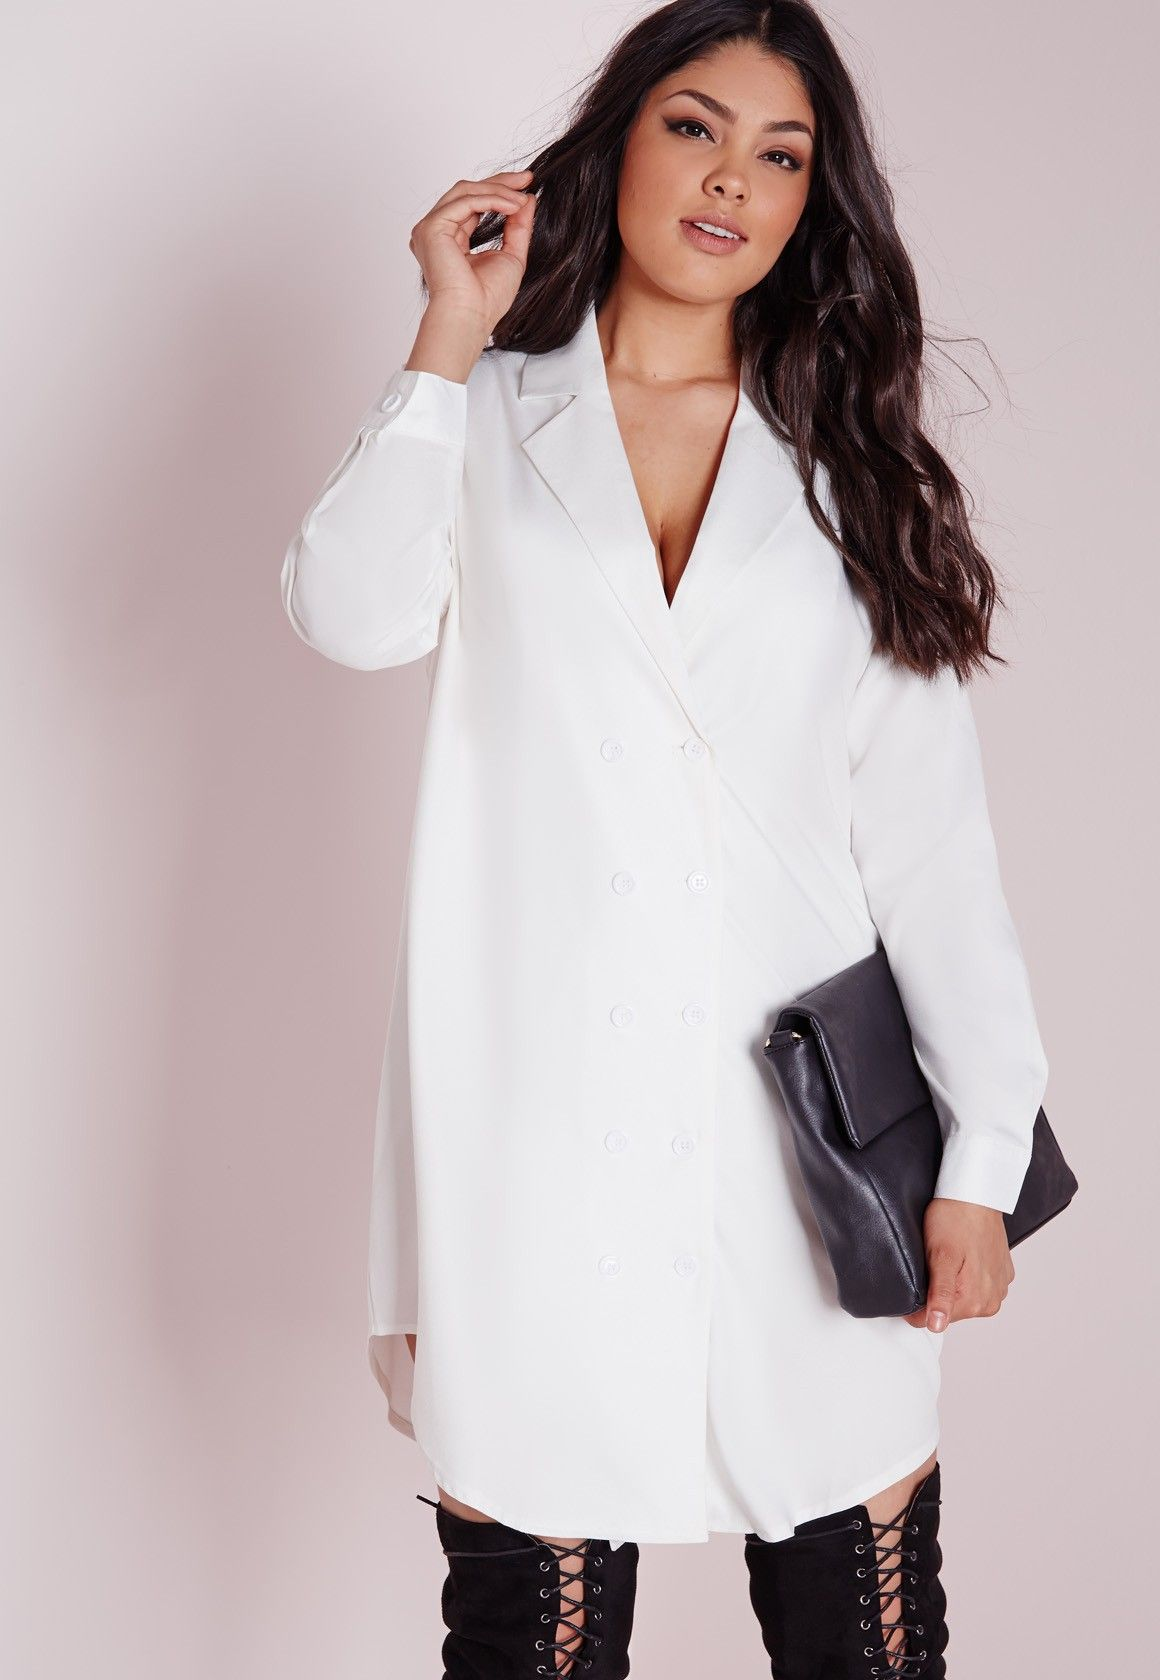 plus size tuxedo shirt dress white inspo pinterest blazer grande taille et taille. Black Bedroom Furniture Sets. Home Design Ideas